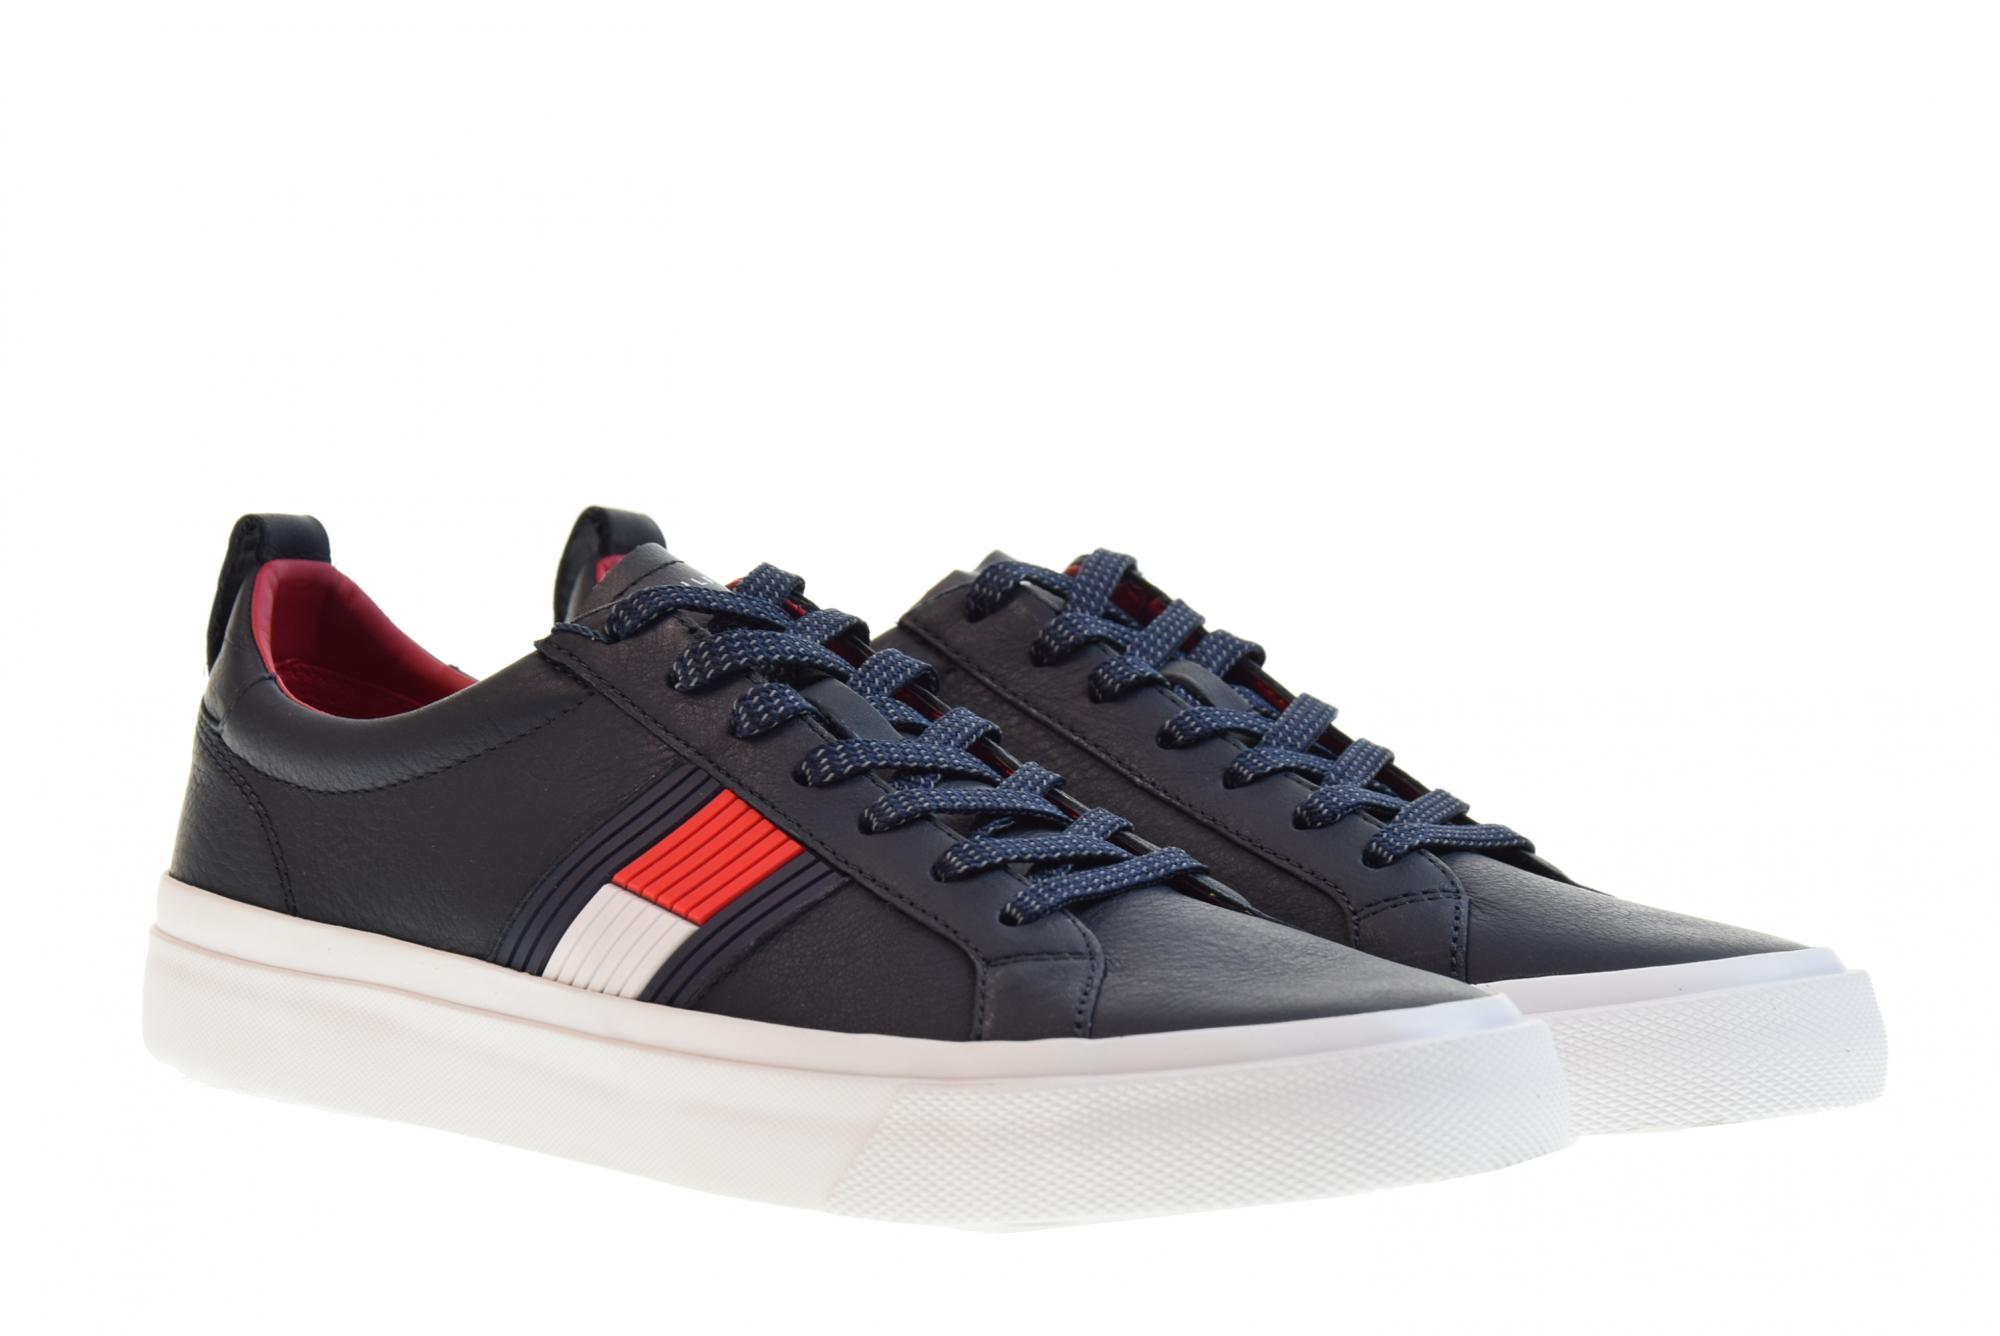 low priced 730b5 2bad2 Dettagli su Tommy Hilfiger scarpe uomo sneakers basse FM0FM01712 403 FLAG  P19